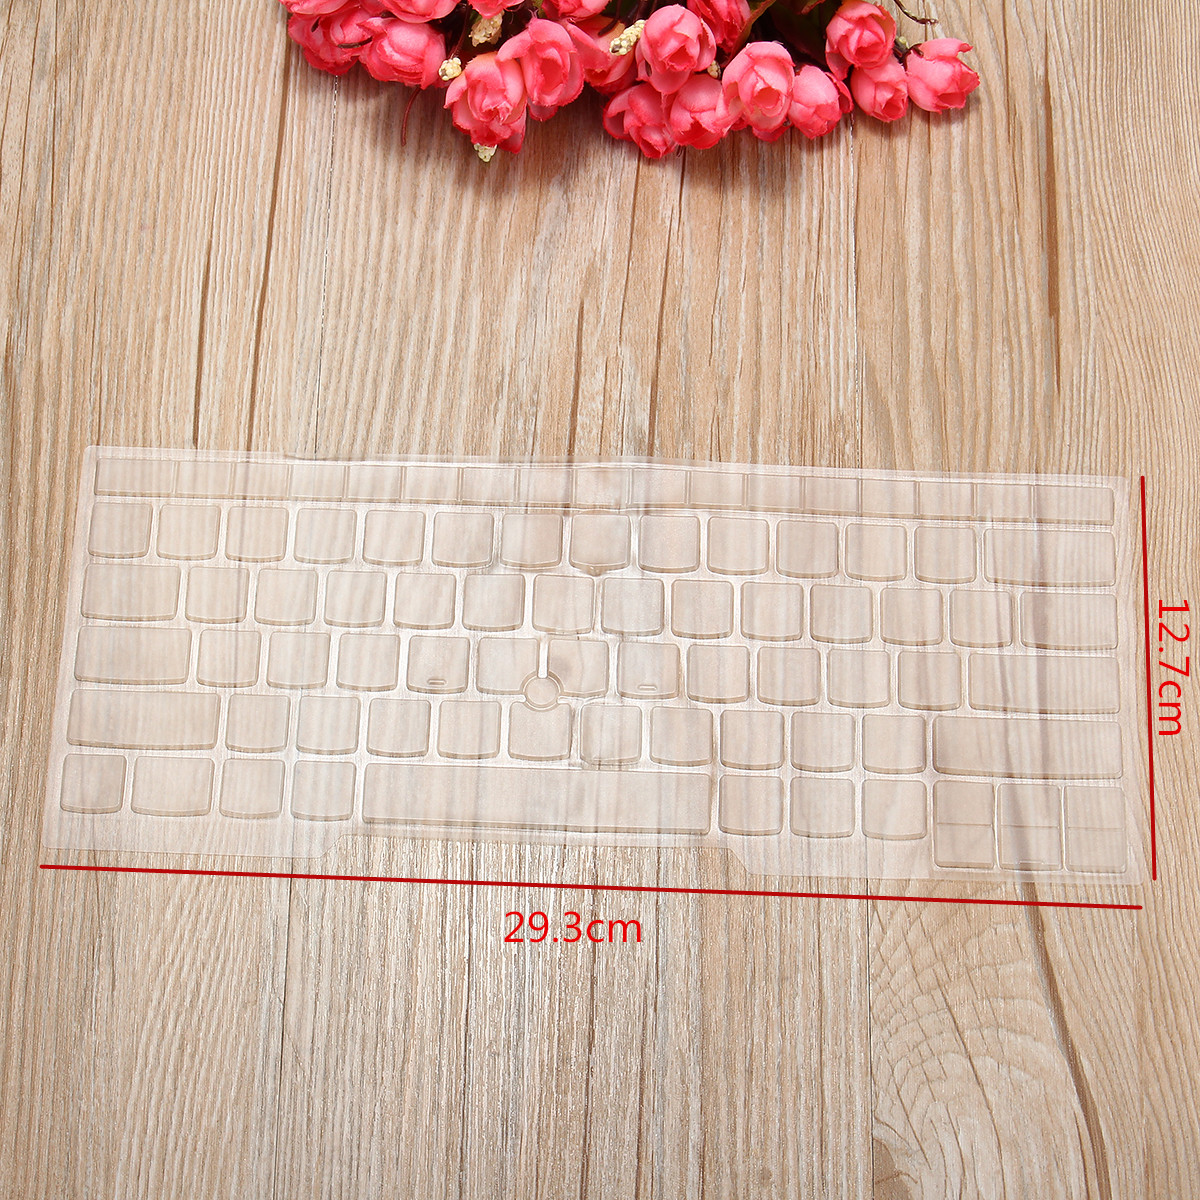 Ultra Thin TPU Clear 14 Inch Keyboard Cover Protector for Lenovo ThinkPad X1 Carbon 2016